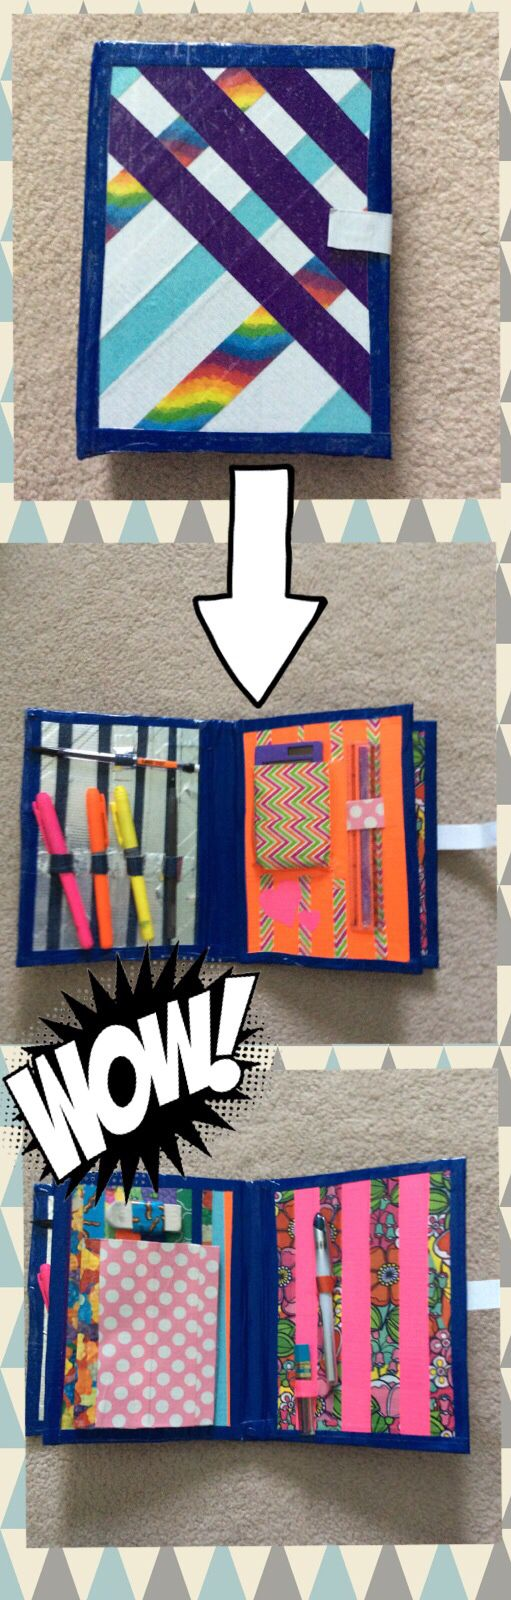 Duct tape binder/pencil book made By Jordyn Reisch                                                                                                                                                                                 More